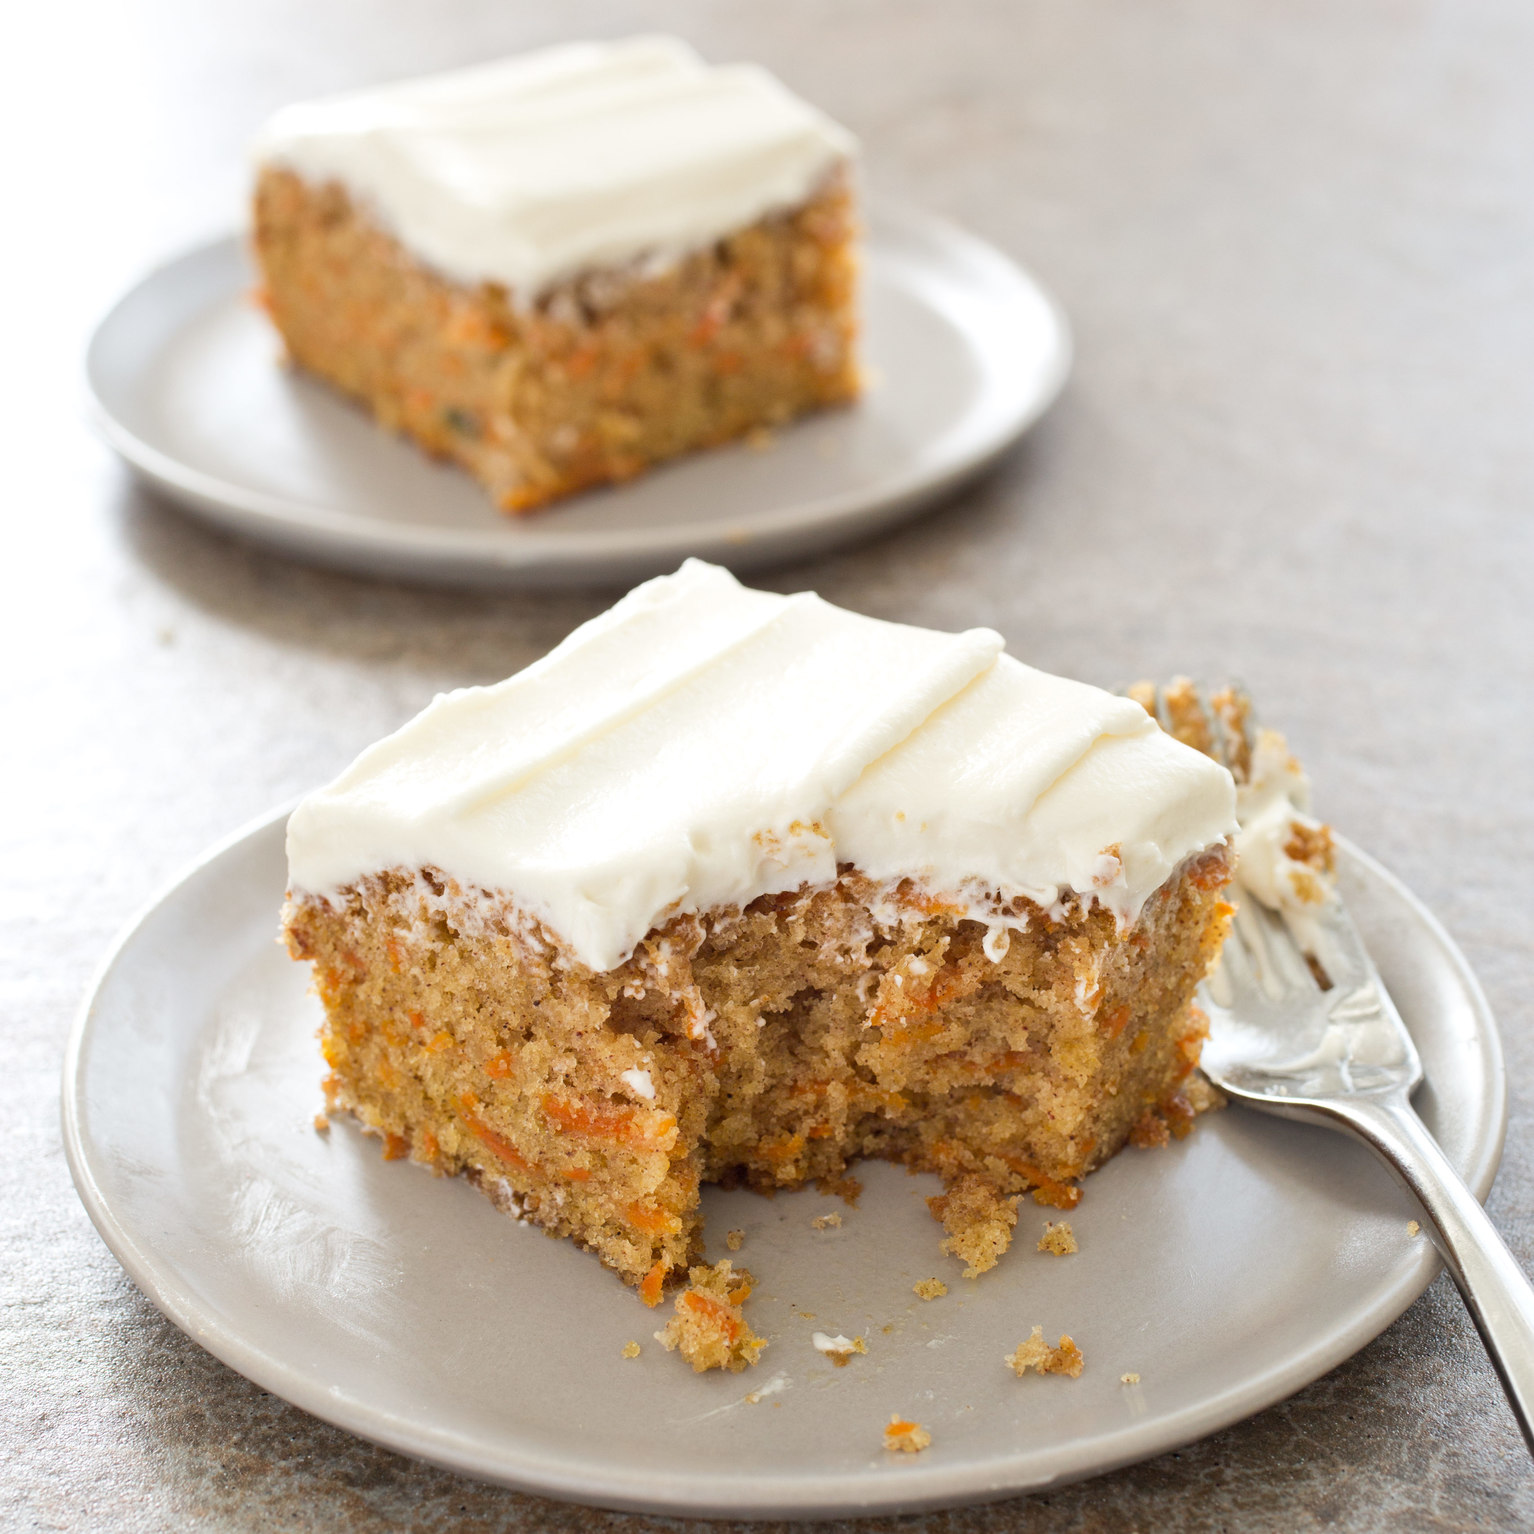 Americas Test Kitchen Gluten Free Carrot Cake